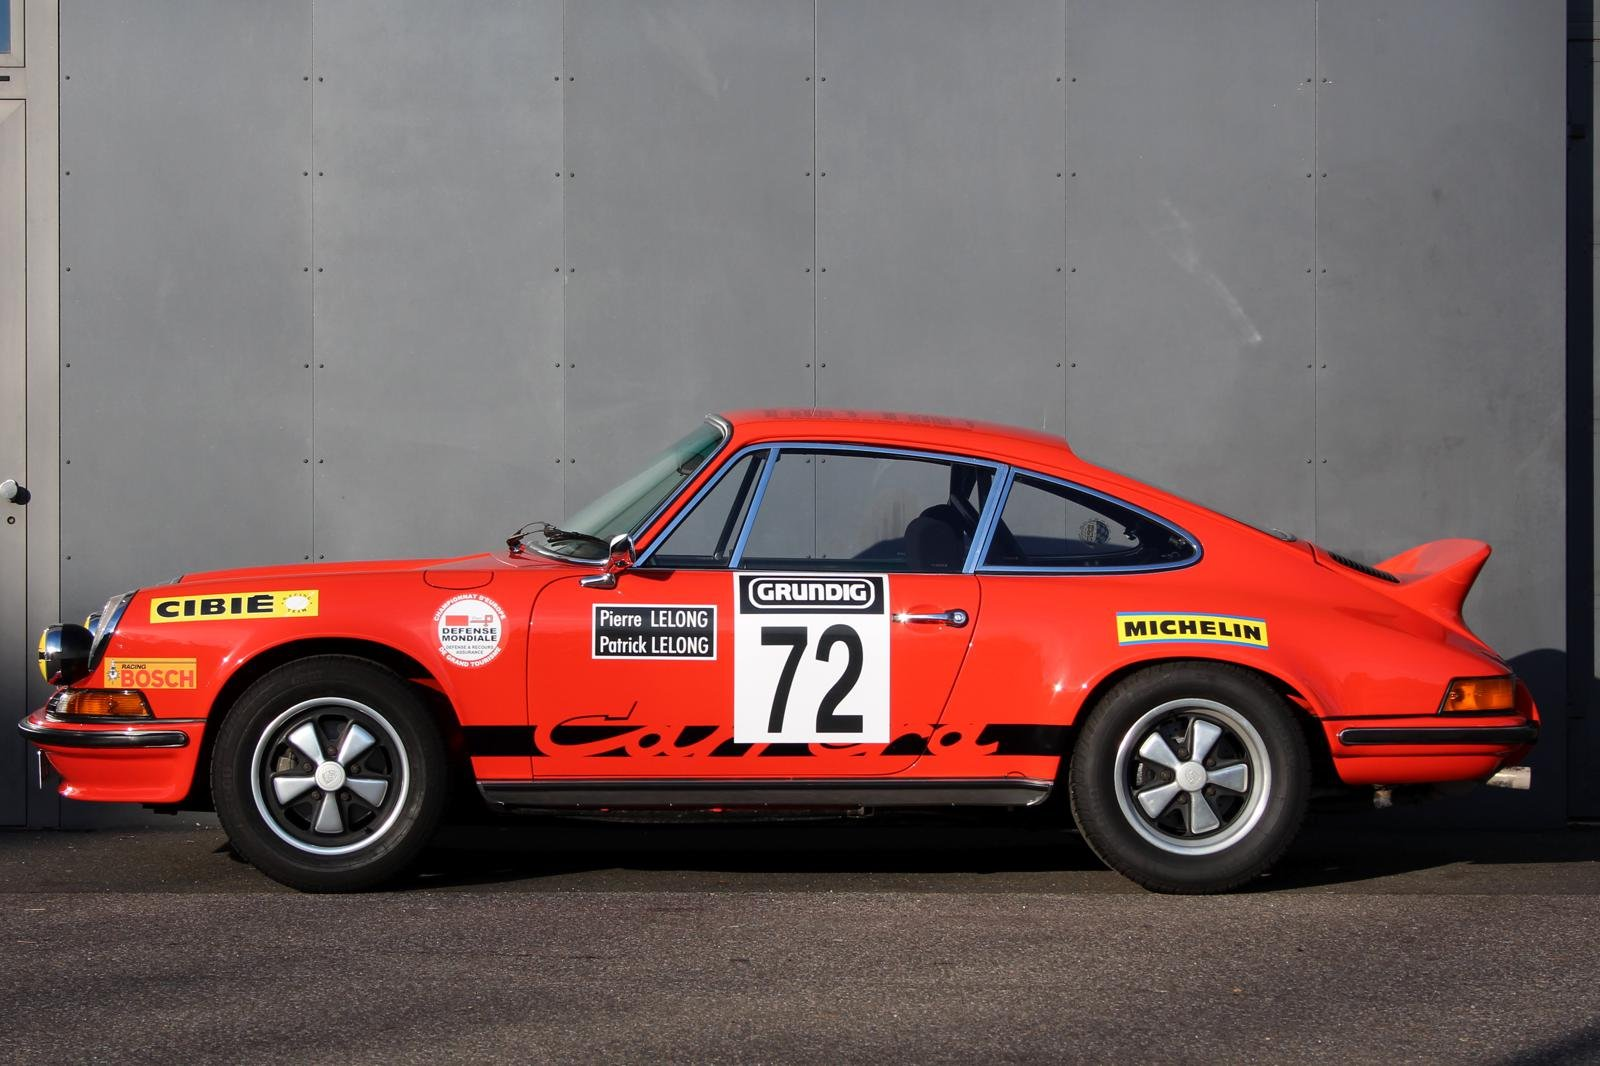 1973 Porsche 911 2,7 RS Touring LHD For Sale (picture 5 of 6)